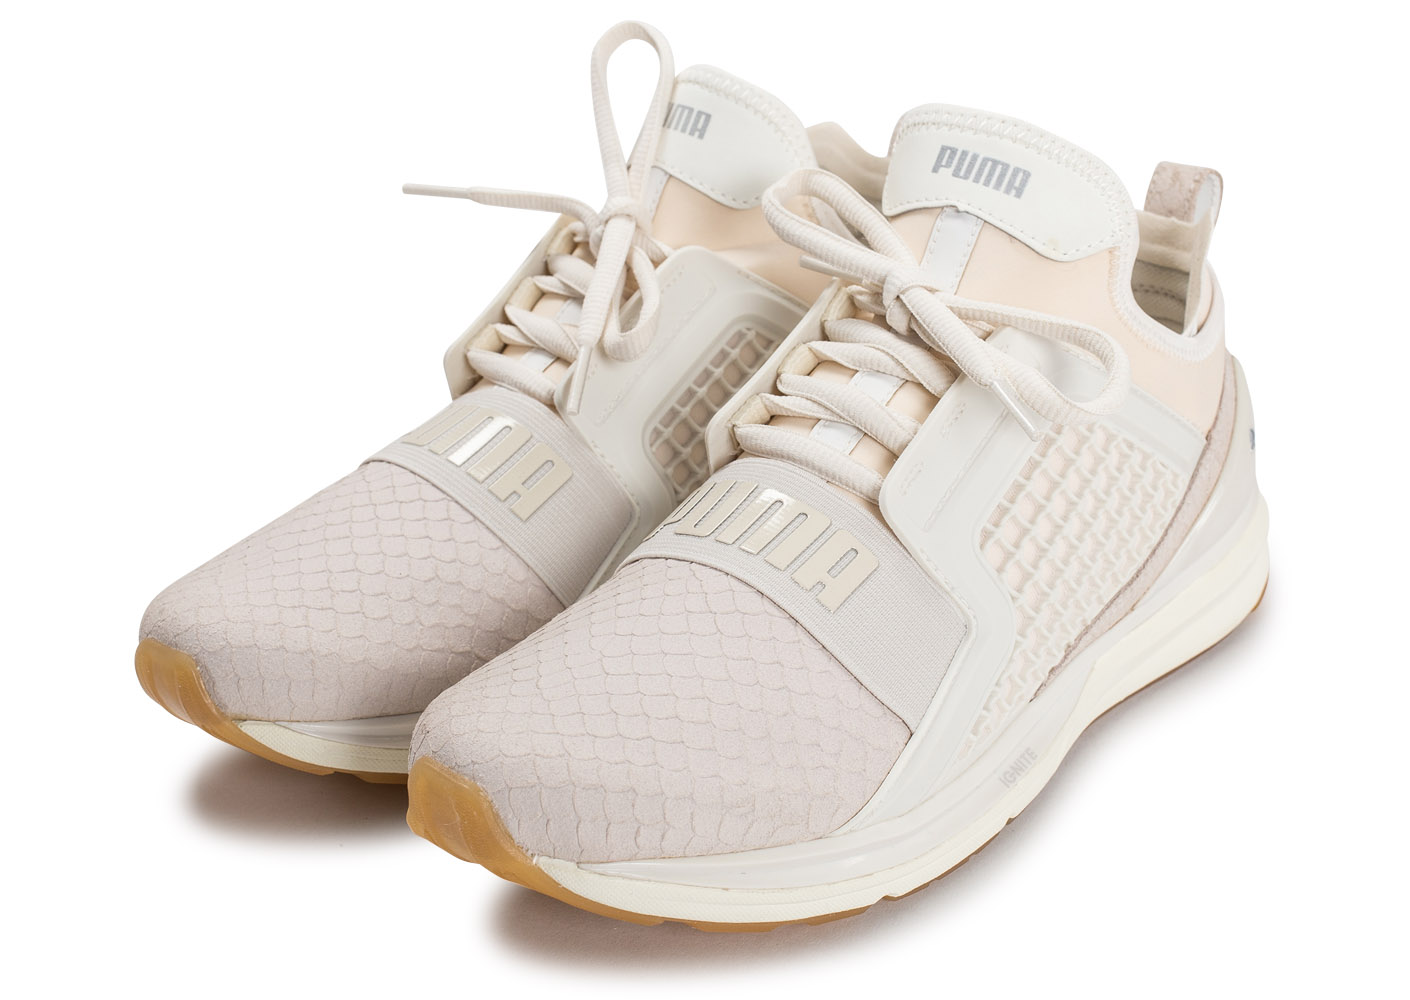 Ignite Puma Chaussures Limitless Homme populaire 0BfnWA5q